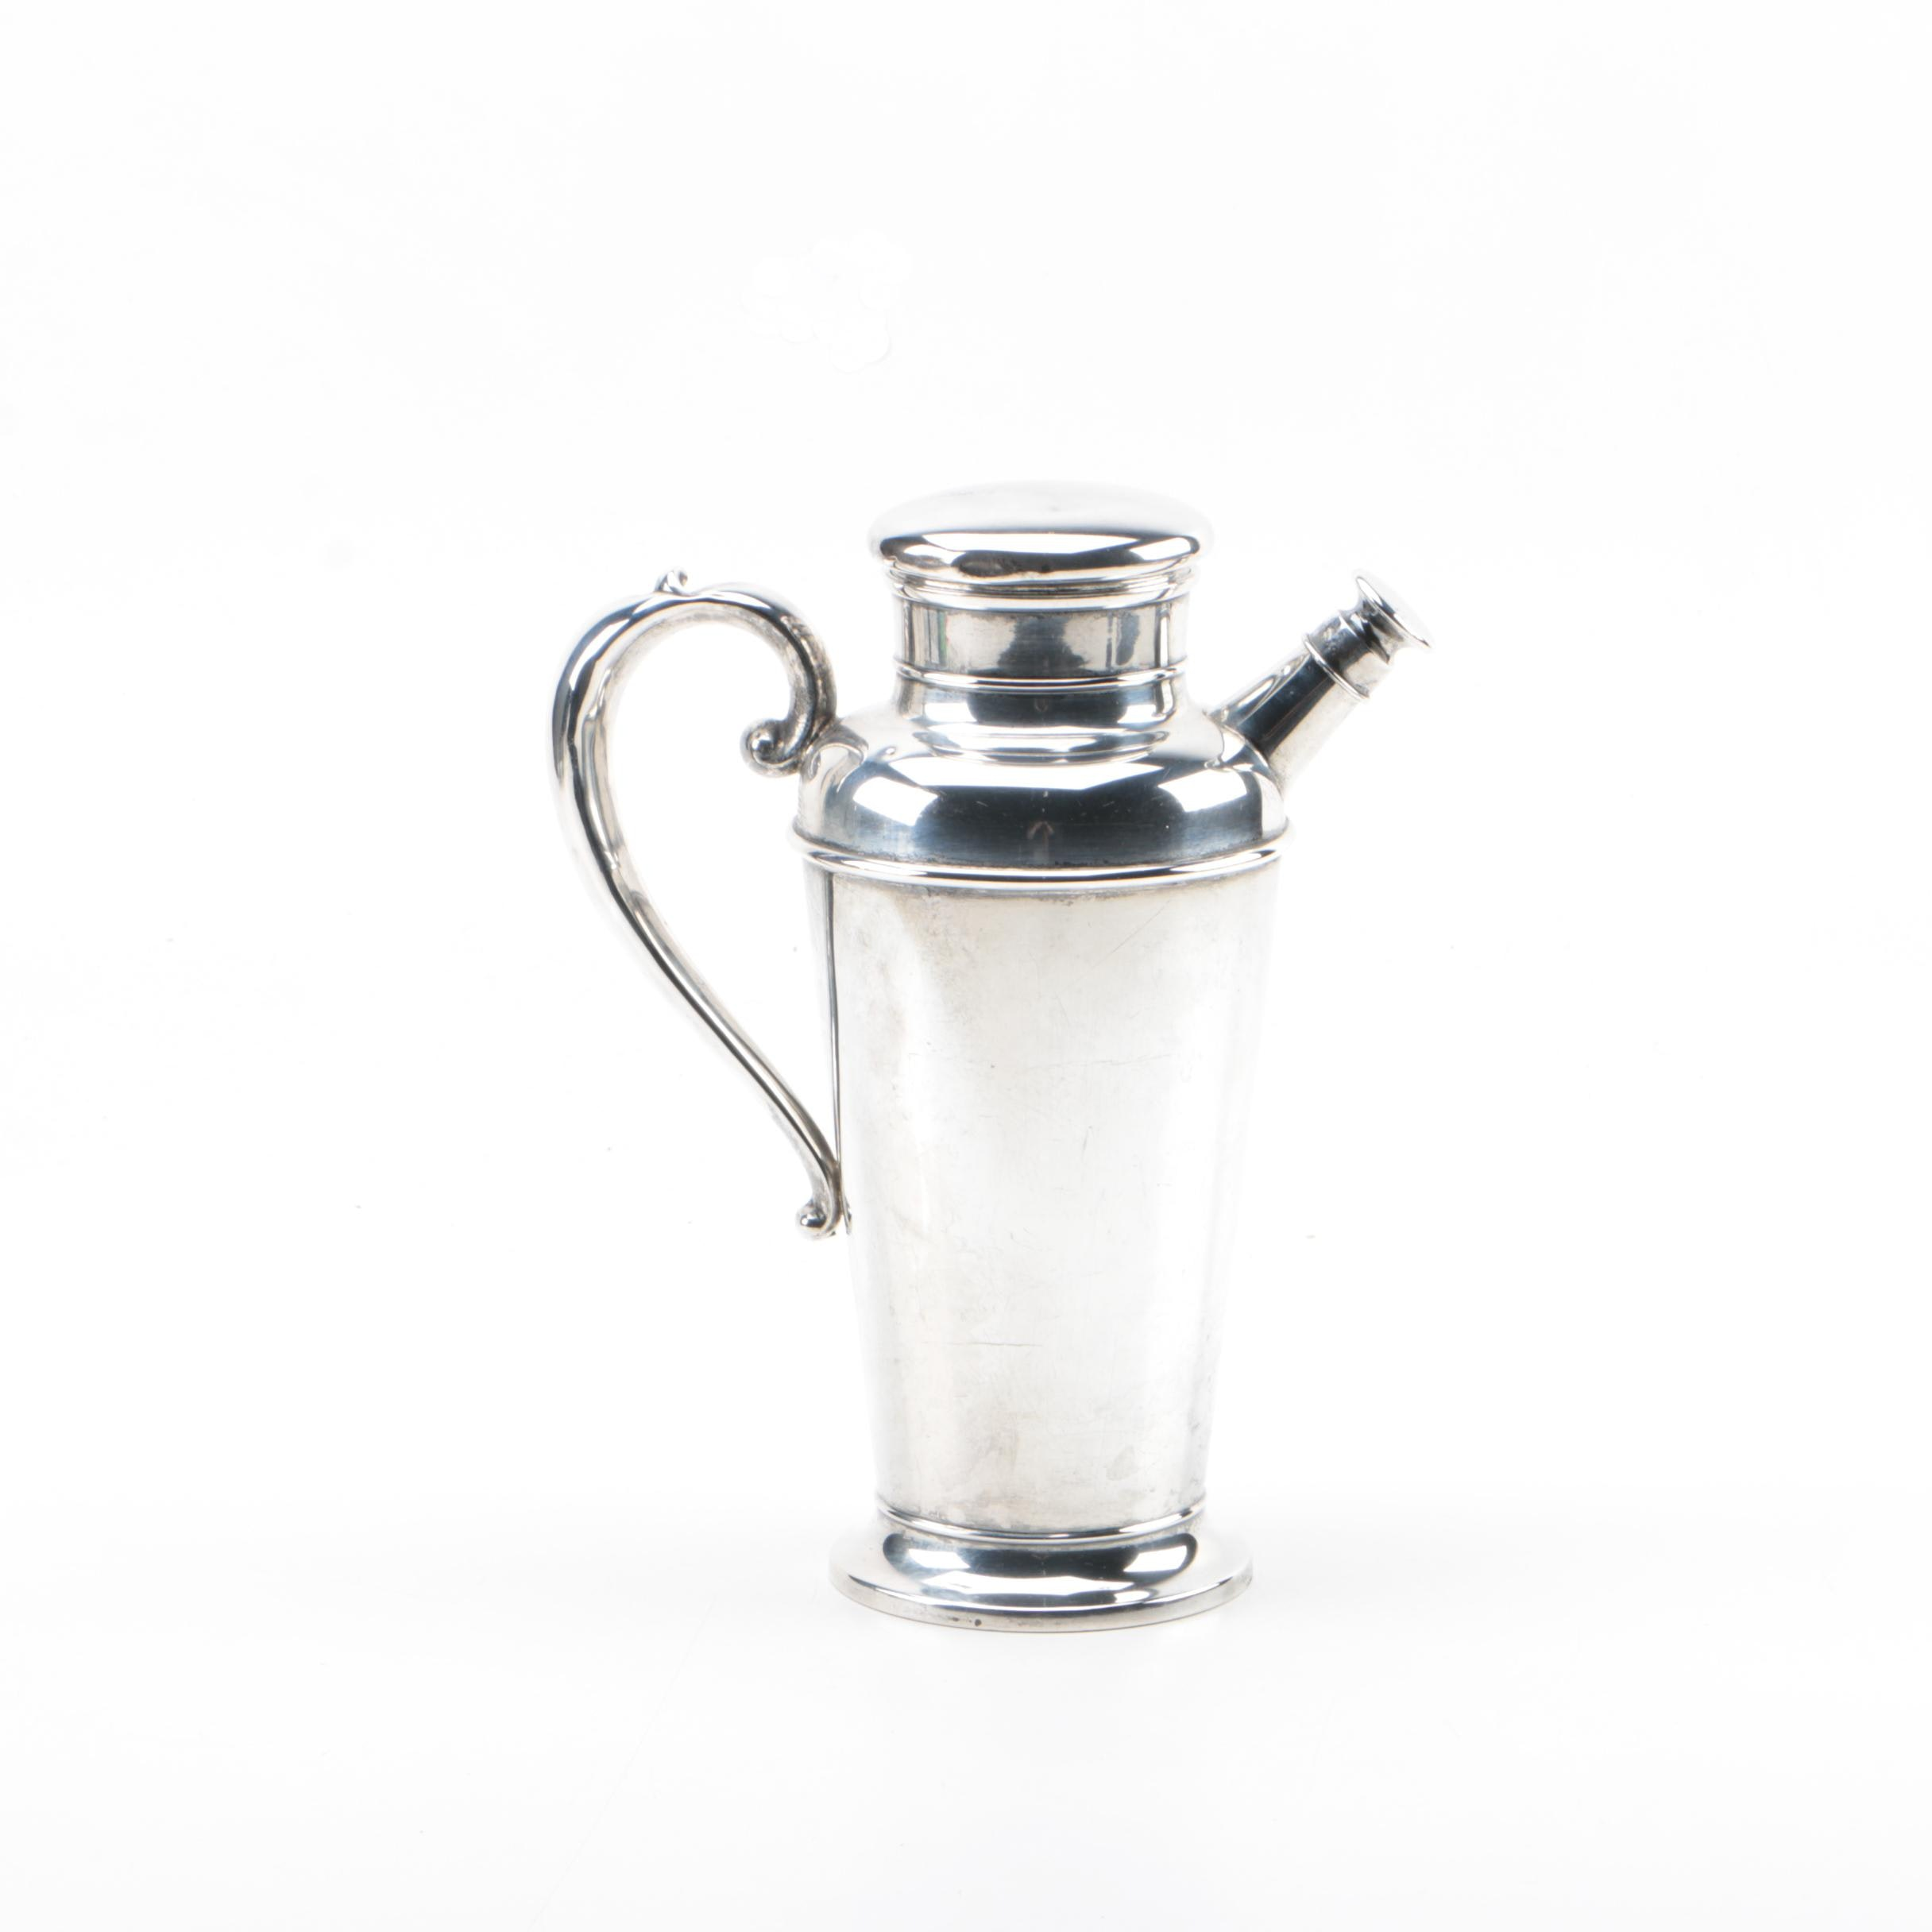 Manchester Silver Co. Sterling Silver Cocktail Shaker